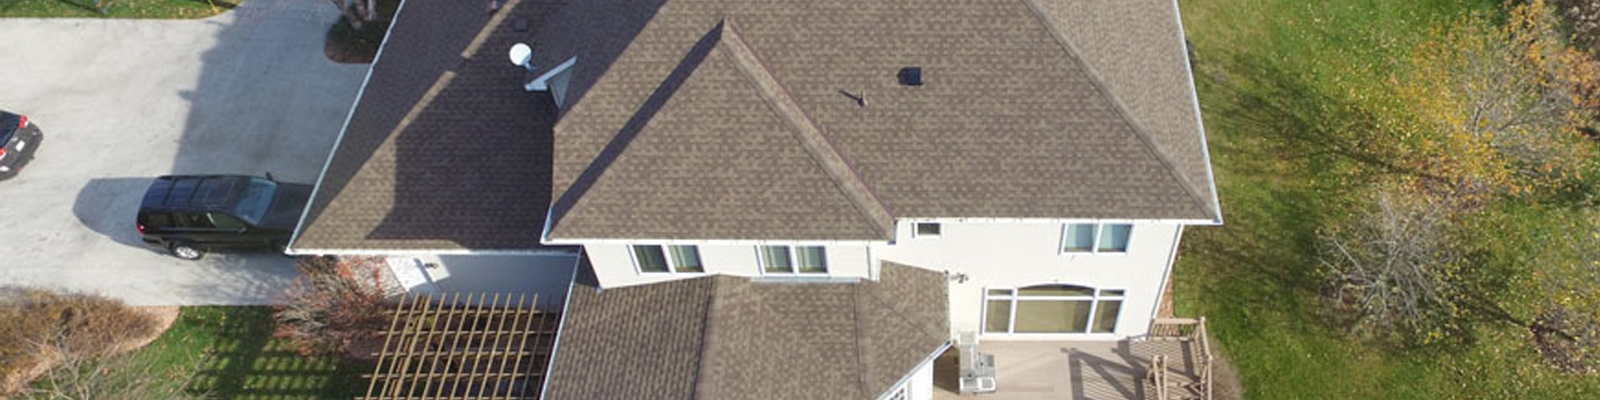 Our roofers only use the finest quality materials for residential roof replacement.